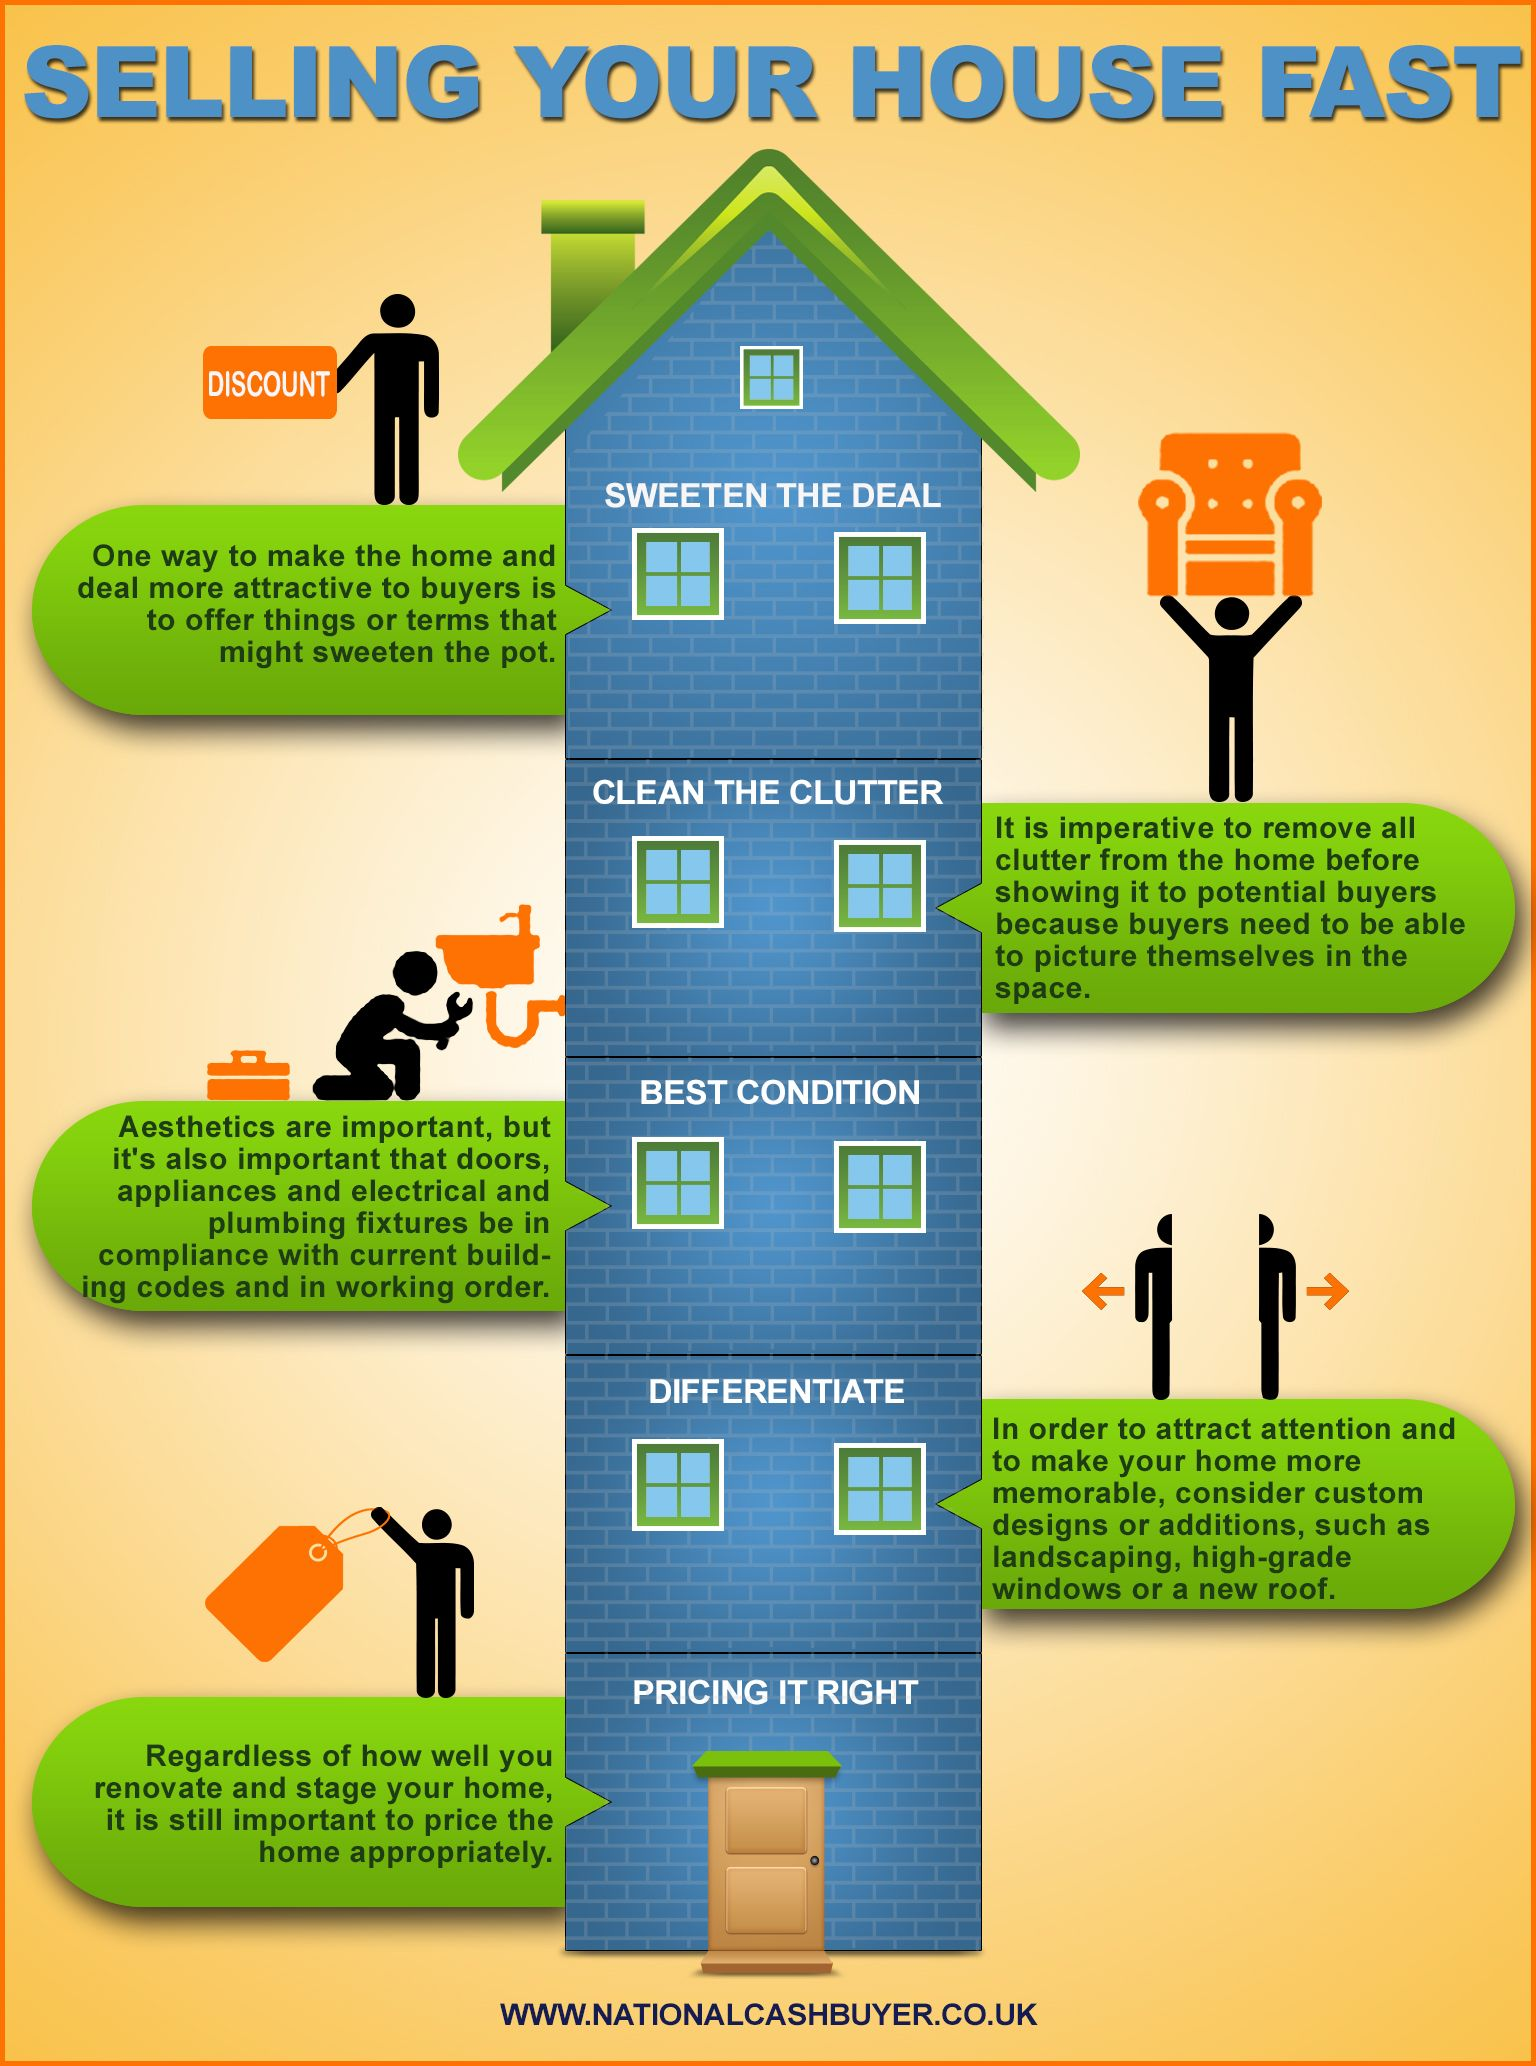 Guardian Mortgage Company | House sales, Buy property and Real estate